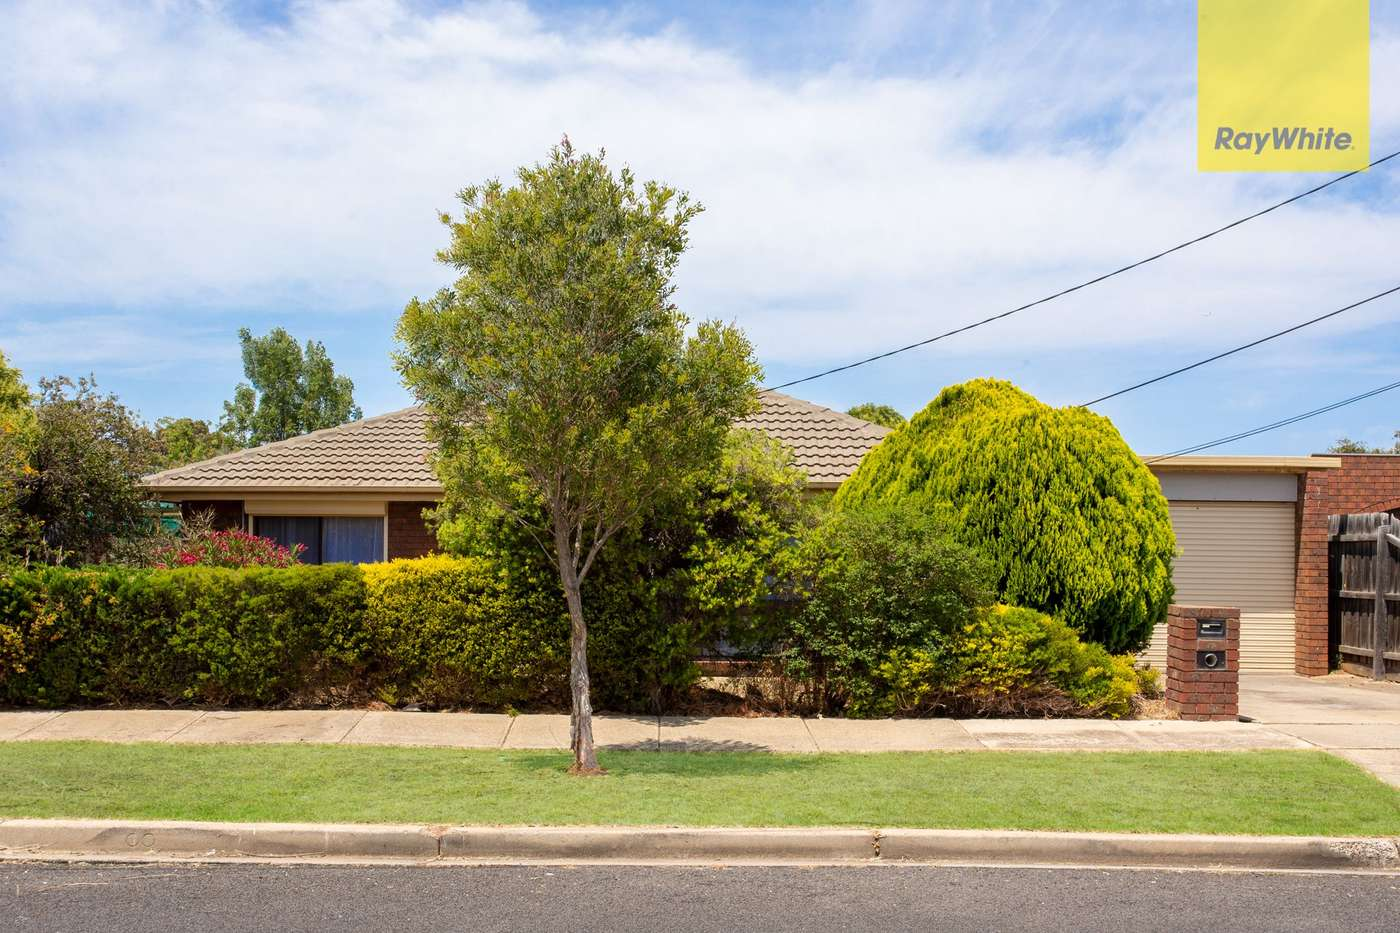 Main view of Homely house listing, 67 Evergreen Avenue, Albanvale, VIC 3021